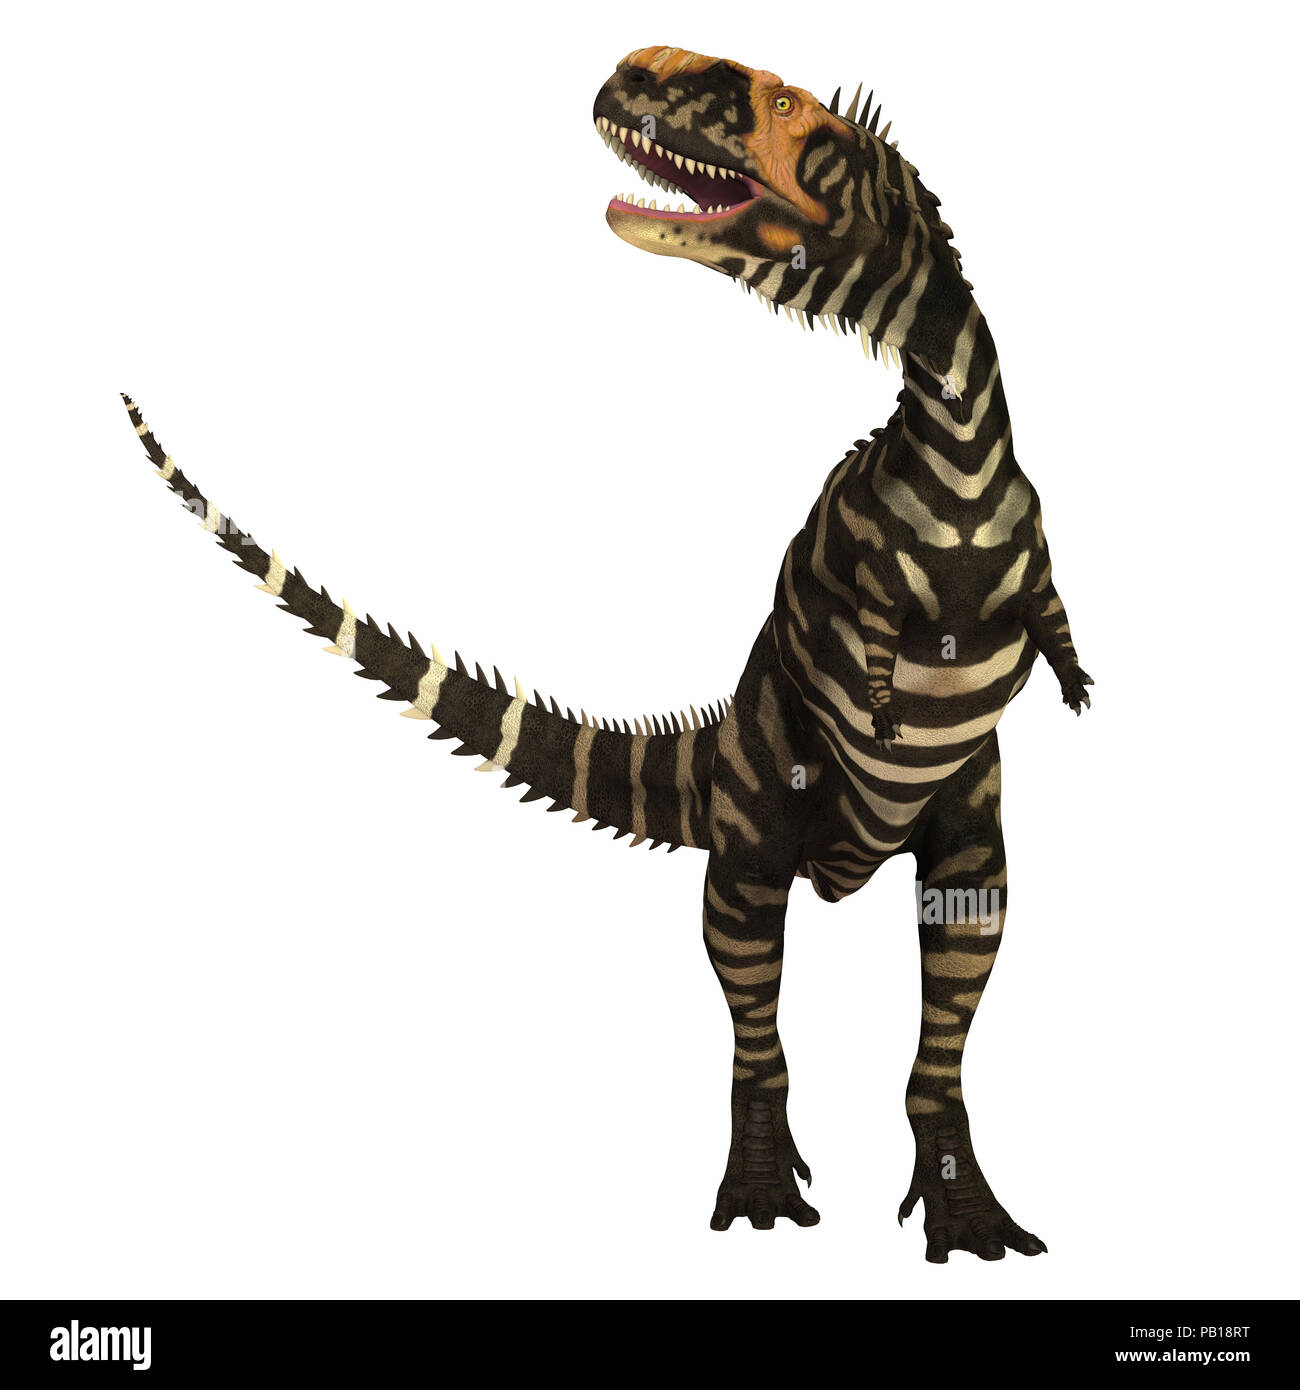 Rajasaurus Dinosaur on White - Rajasaurus was a carnivorous theropod dinosaur that lived in India during the Cretaceous Period. - Stock Image